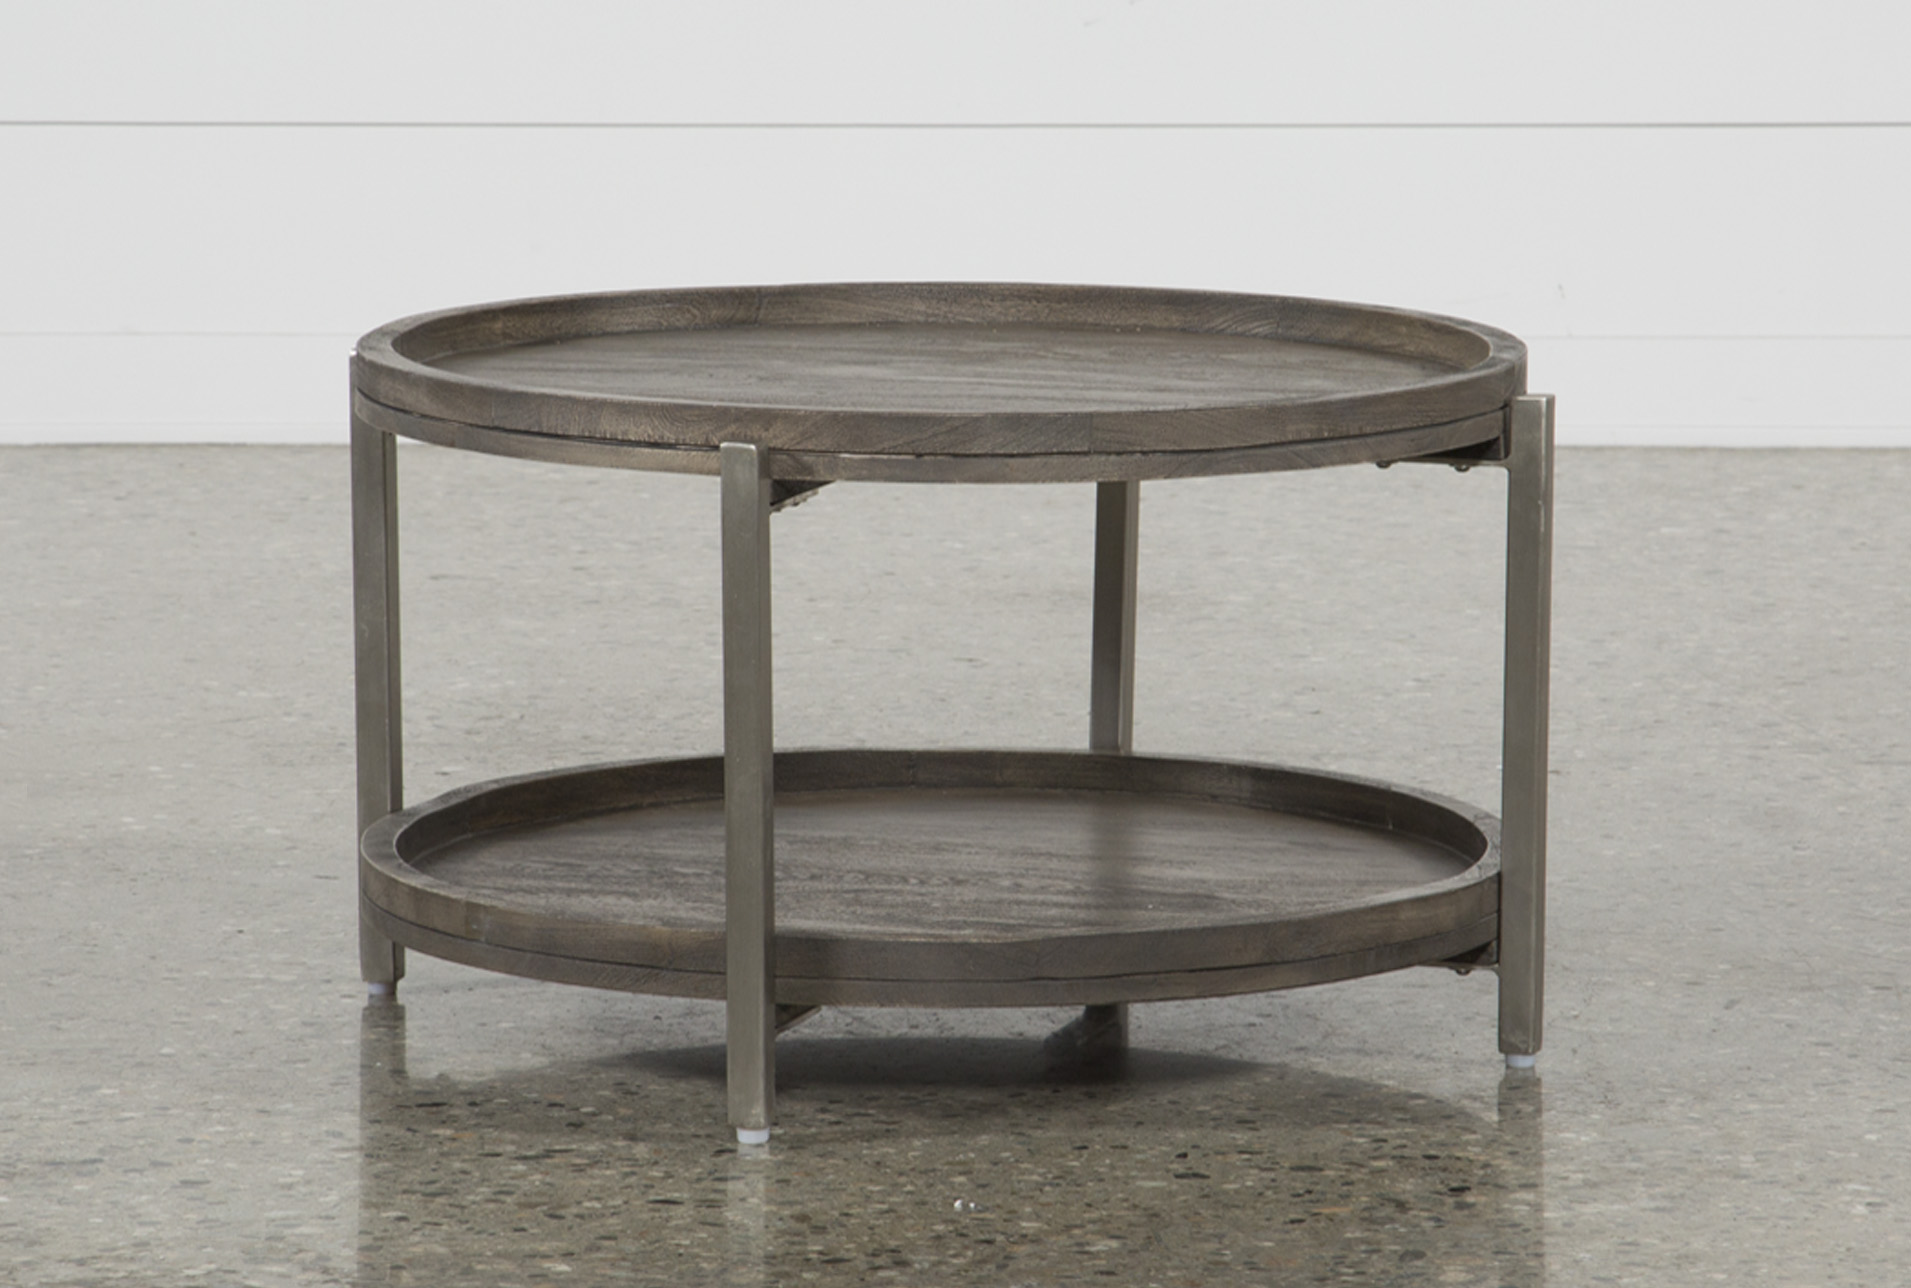 Swell Round Coffee Table   360